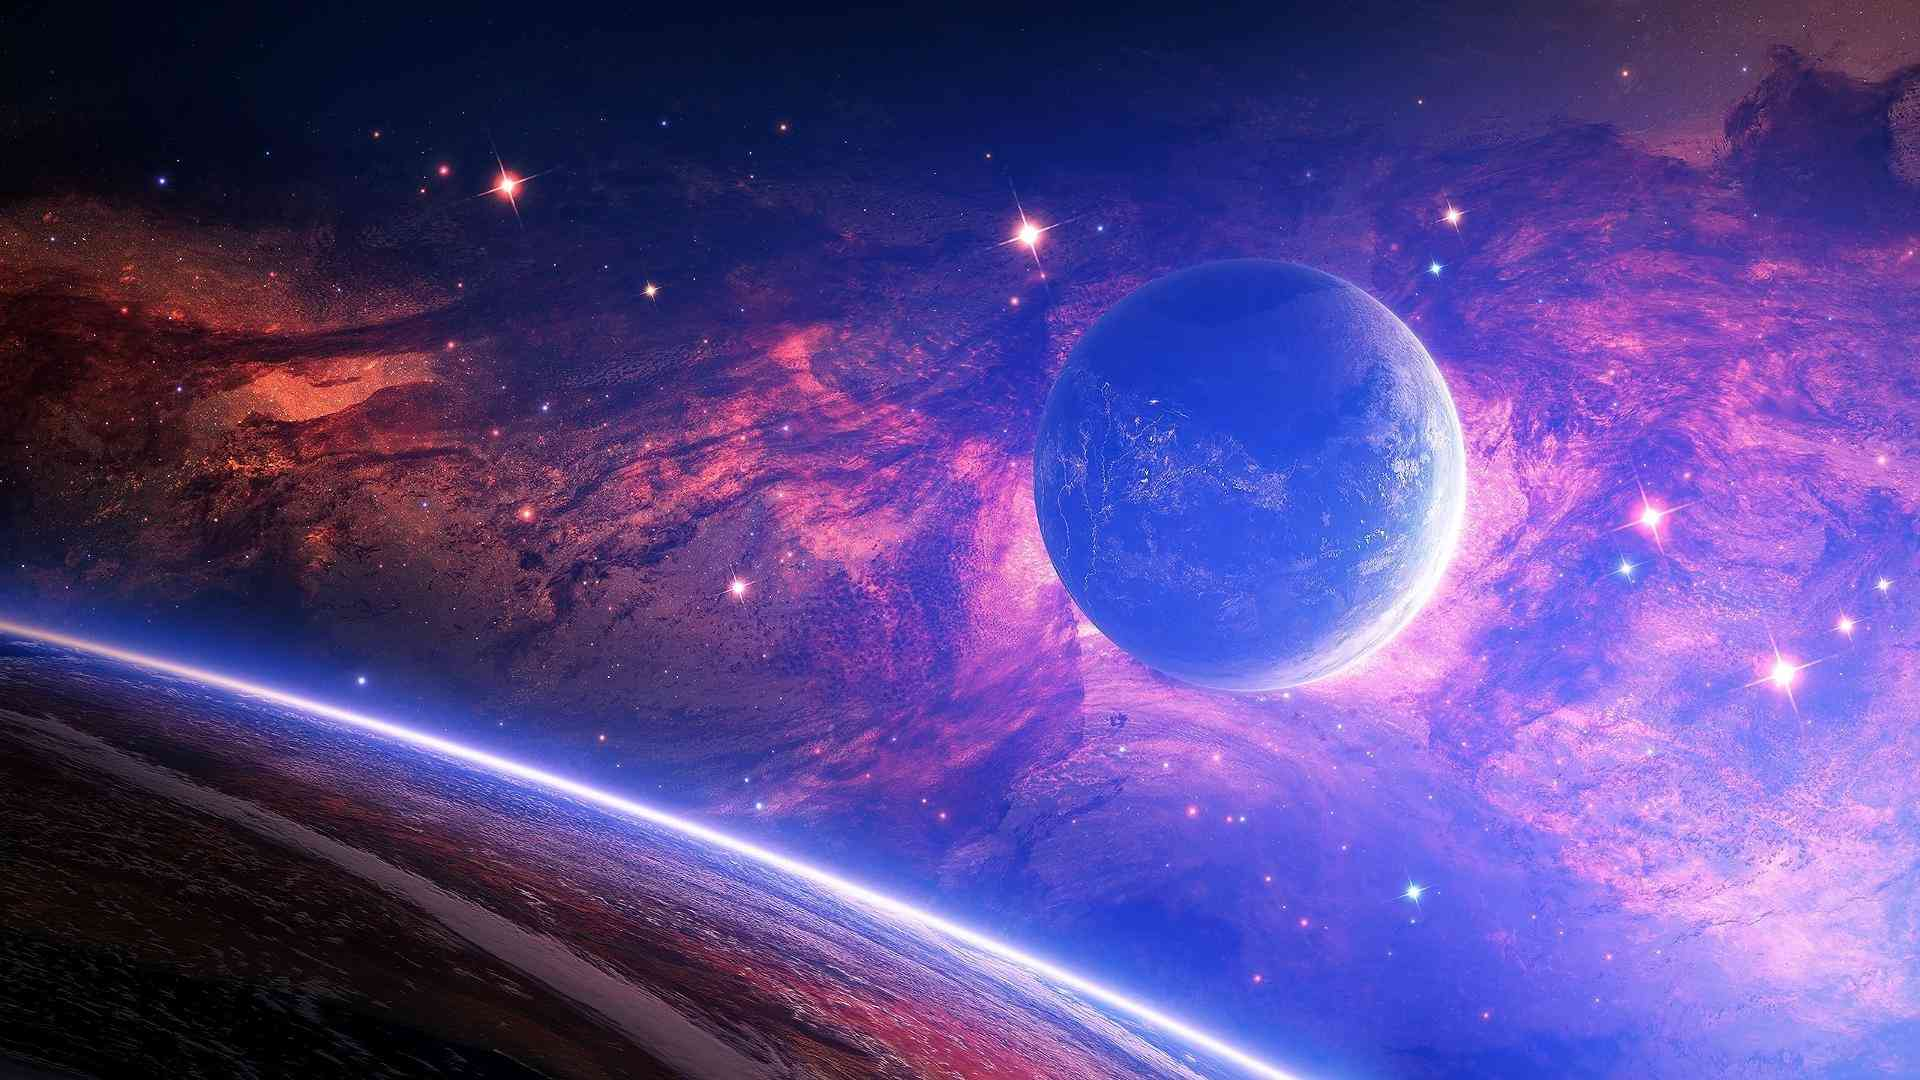 Galaxy space wallpaper